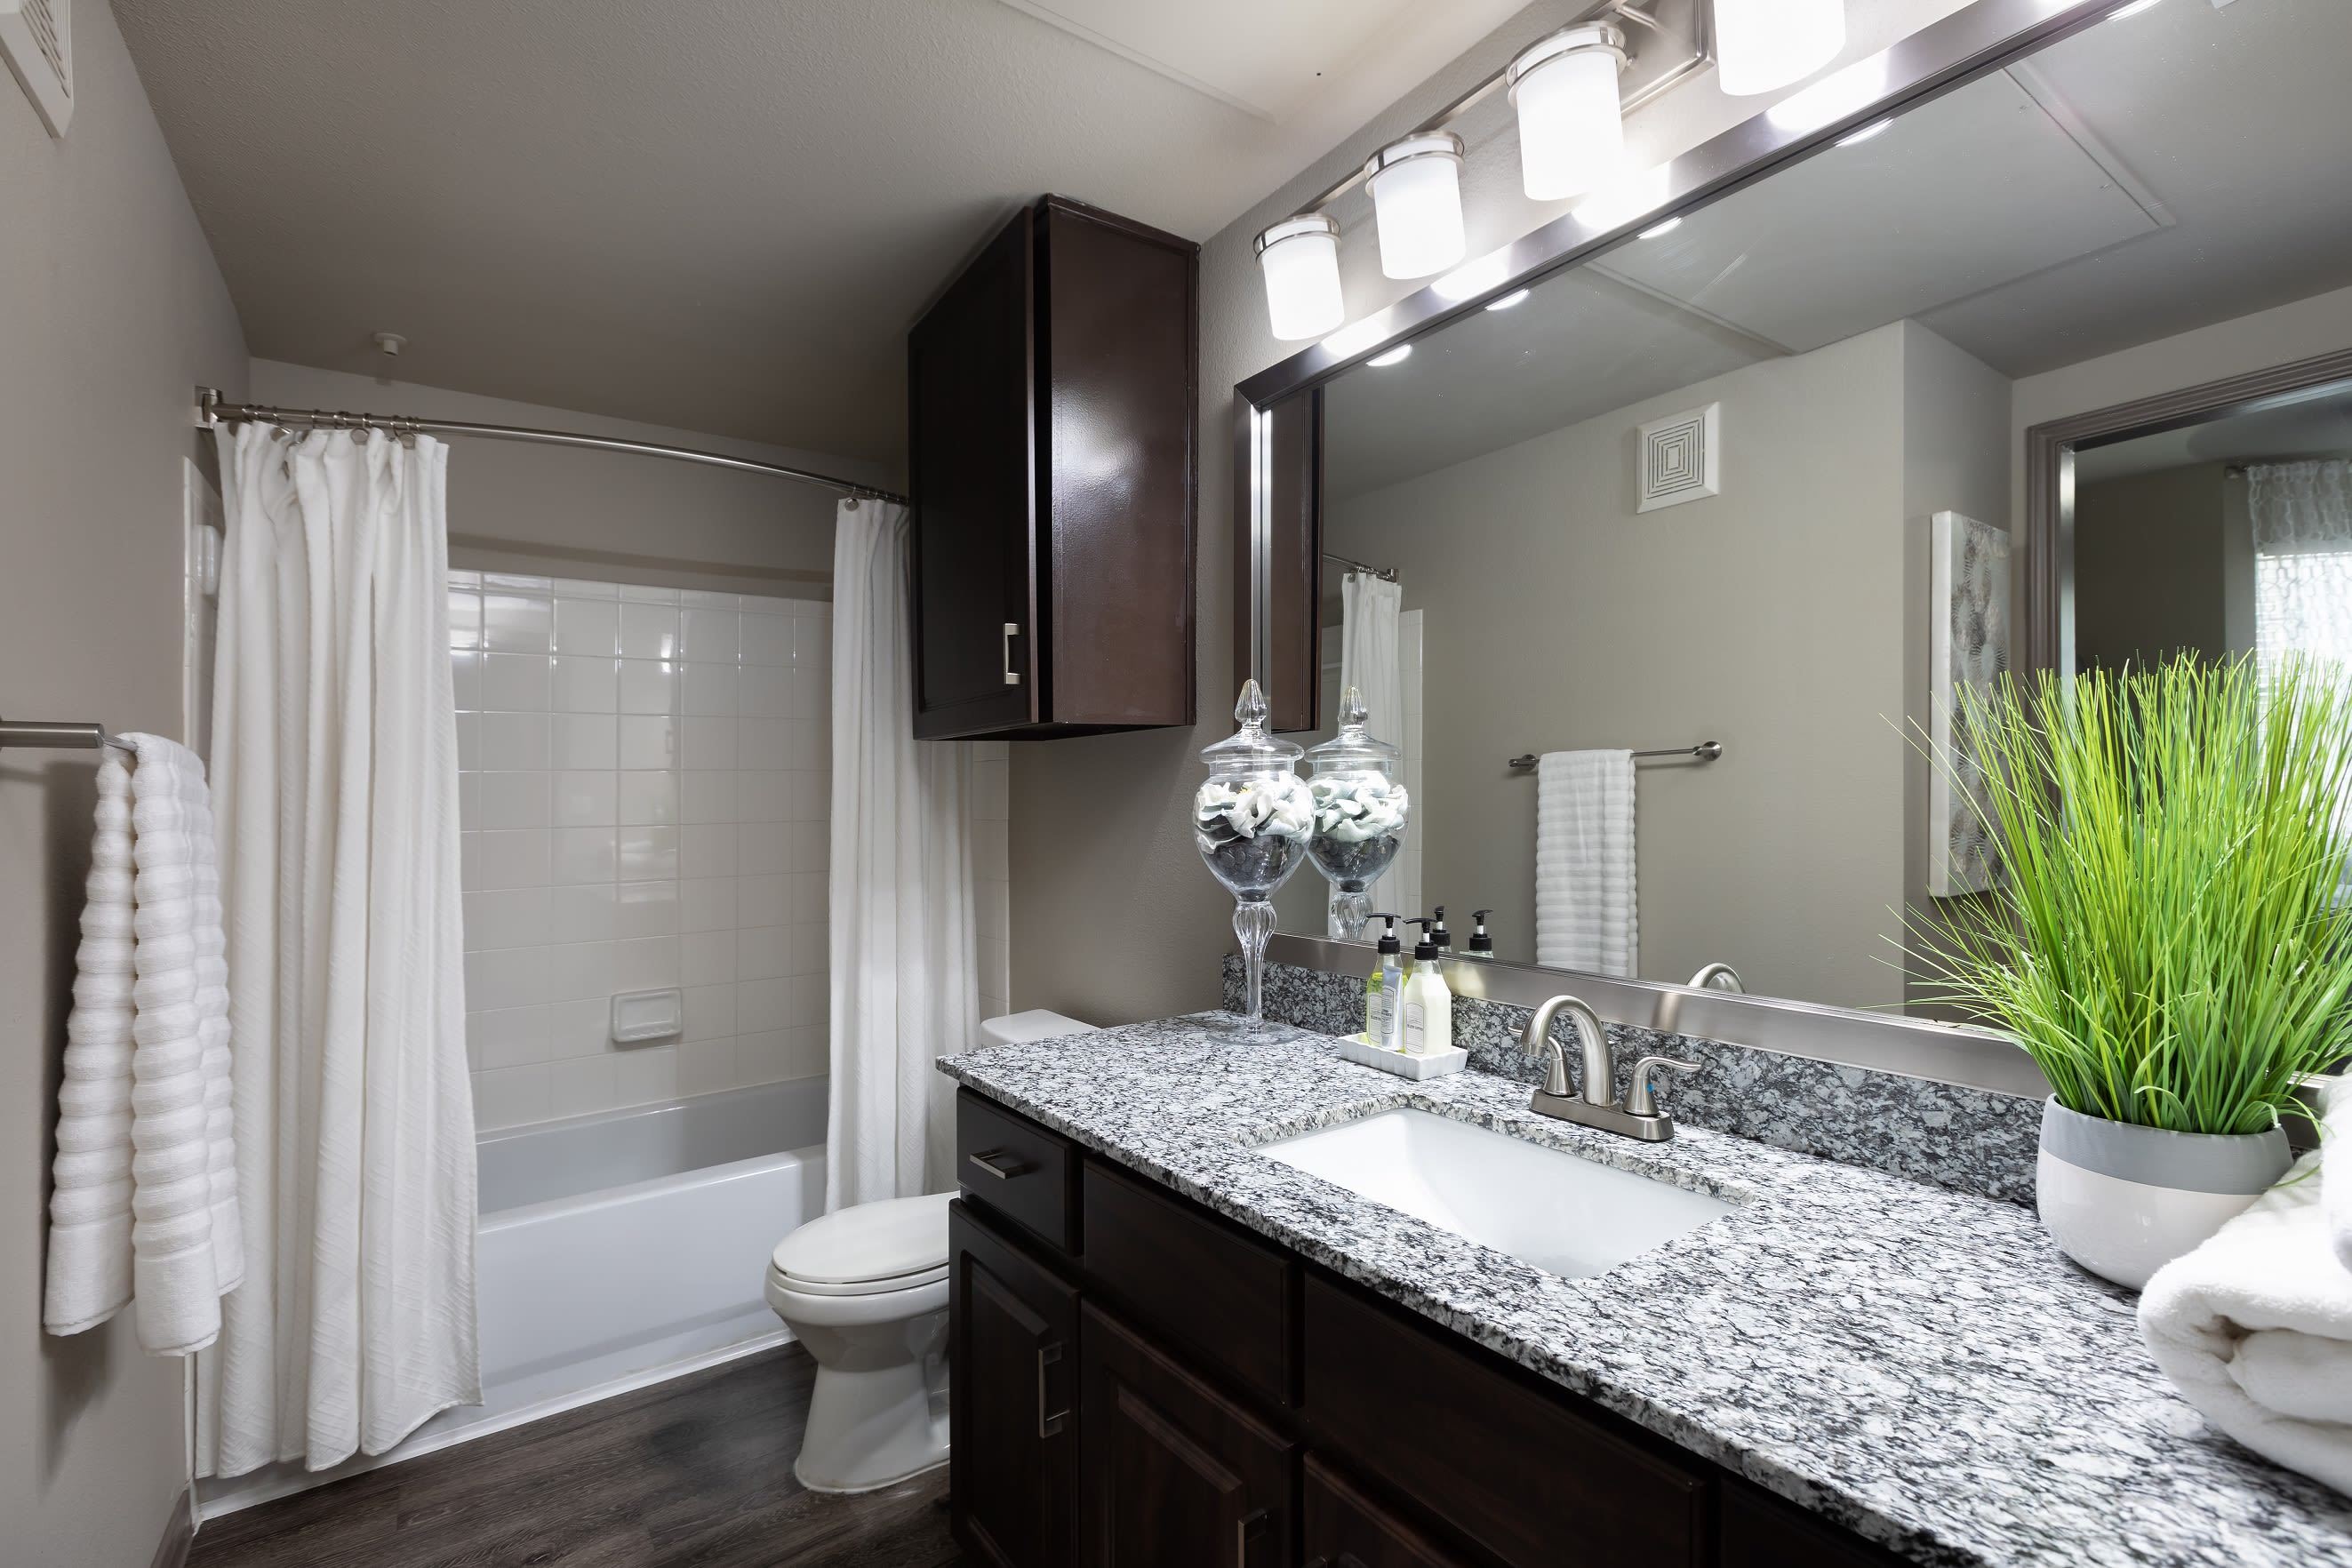 Spacious bathroom with tub and granite countertops at Artisan at Lake Wyndemere in The Woodlands, Texas